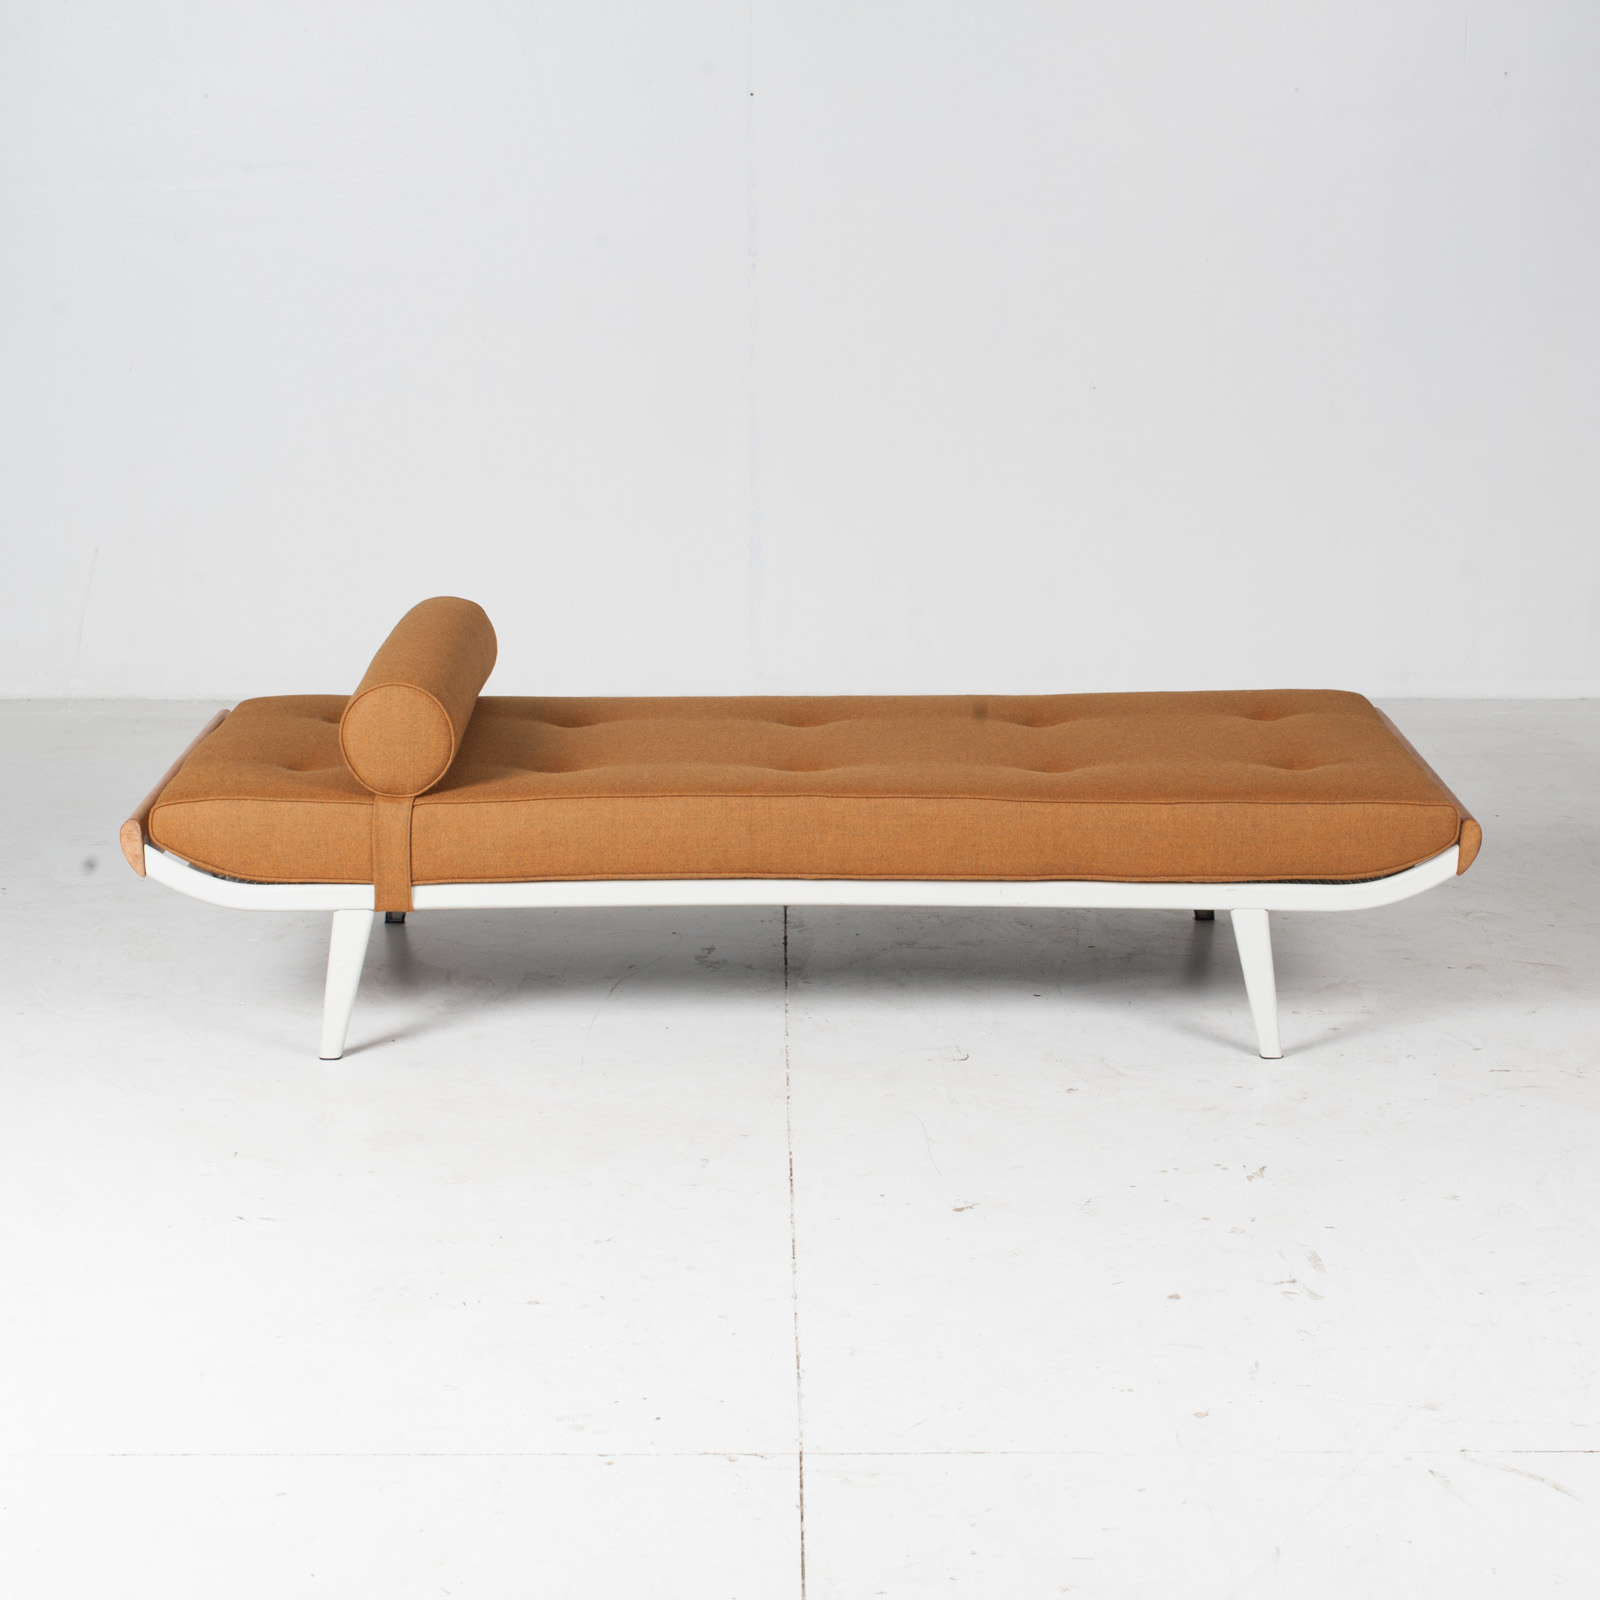 Cleopatra Daybed By Andre Cordemeyer For Auping In White Frame, 1950s, The Netherlands20